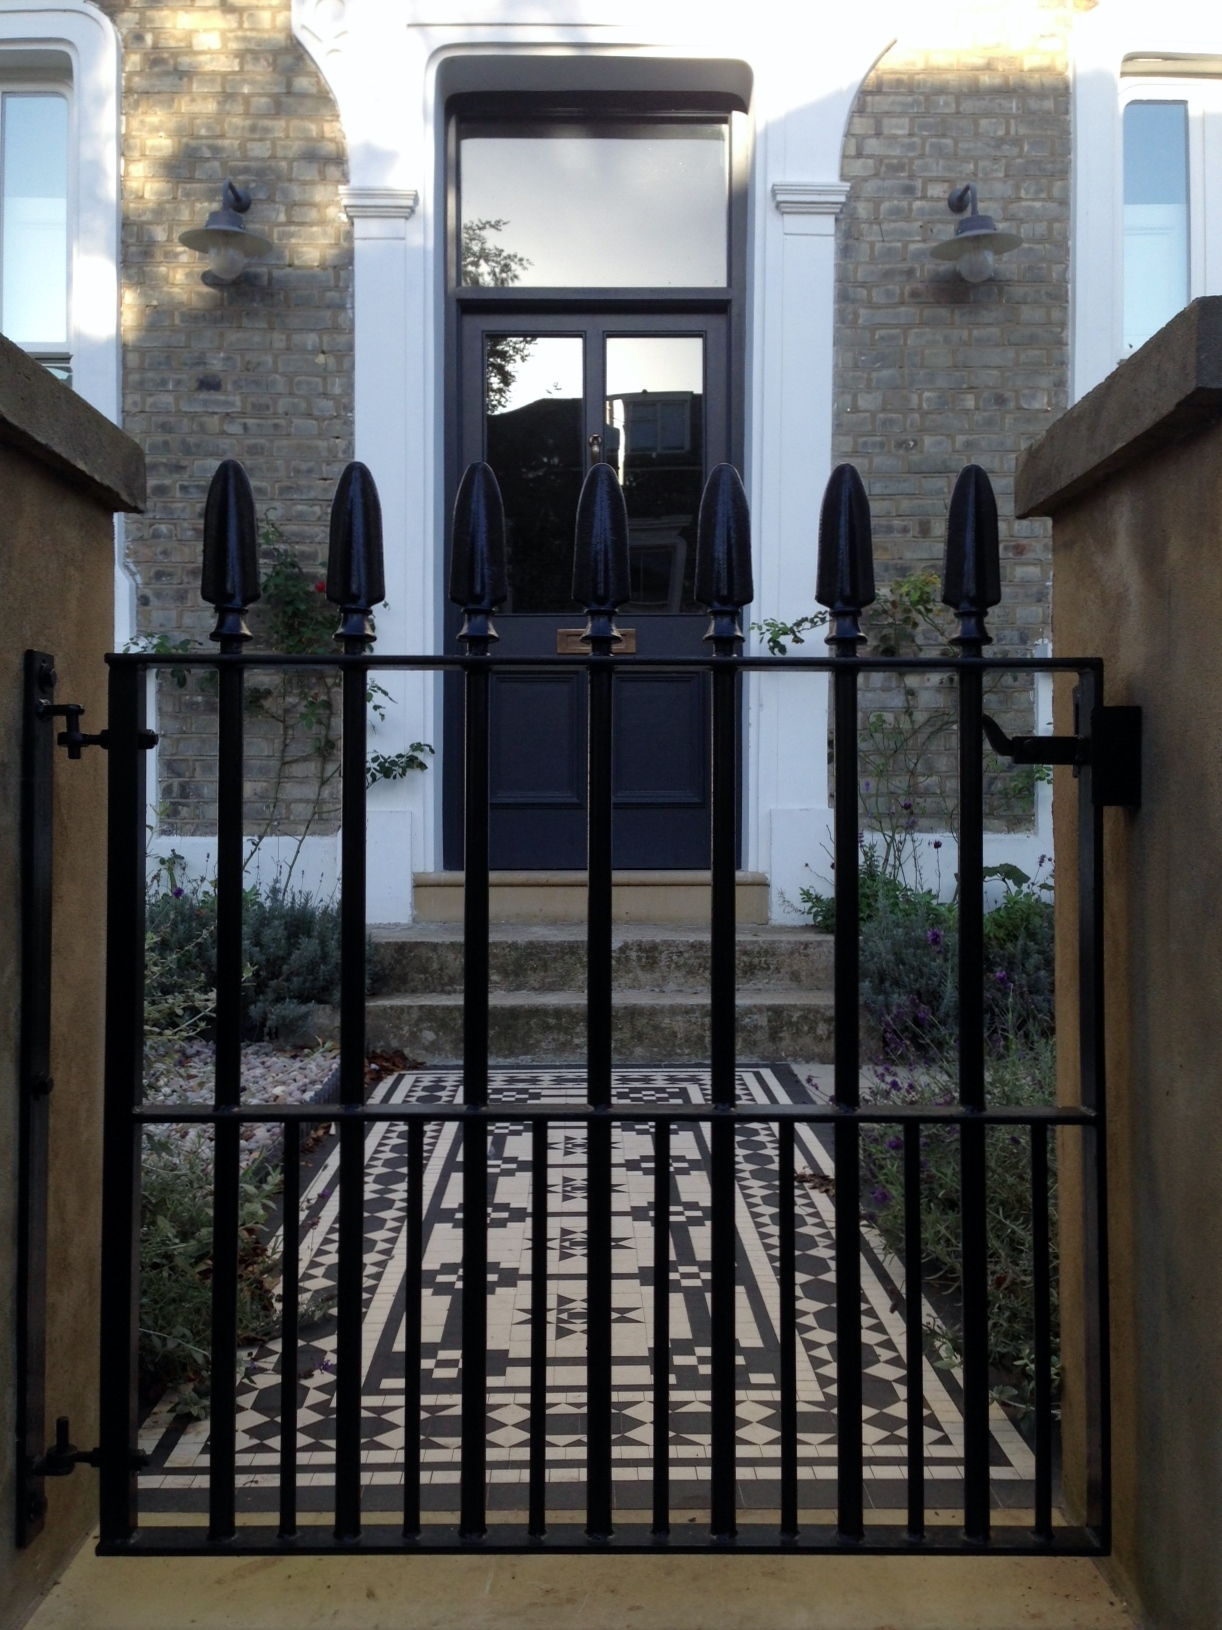 Islington Victorian mosaic tile path York stone sandstone paving wrought iron rails and gate London (11)